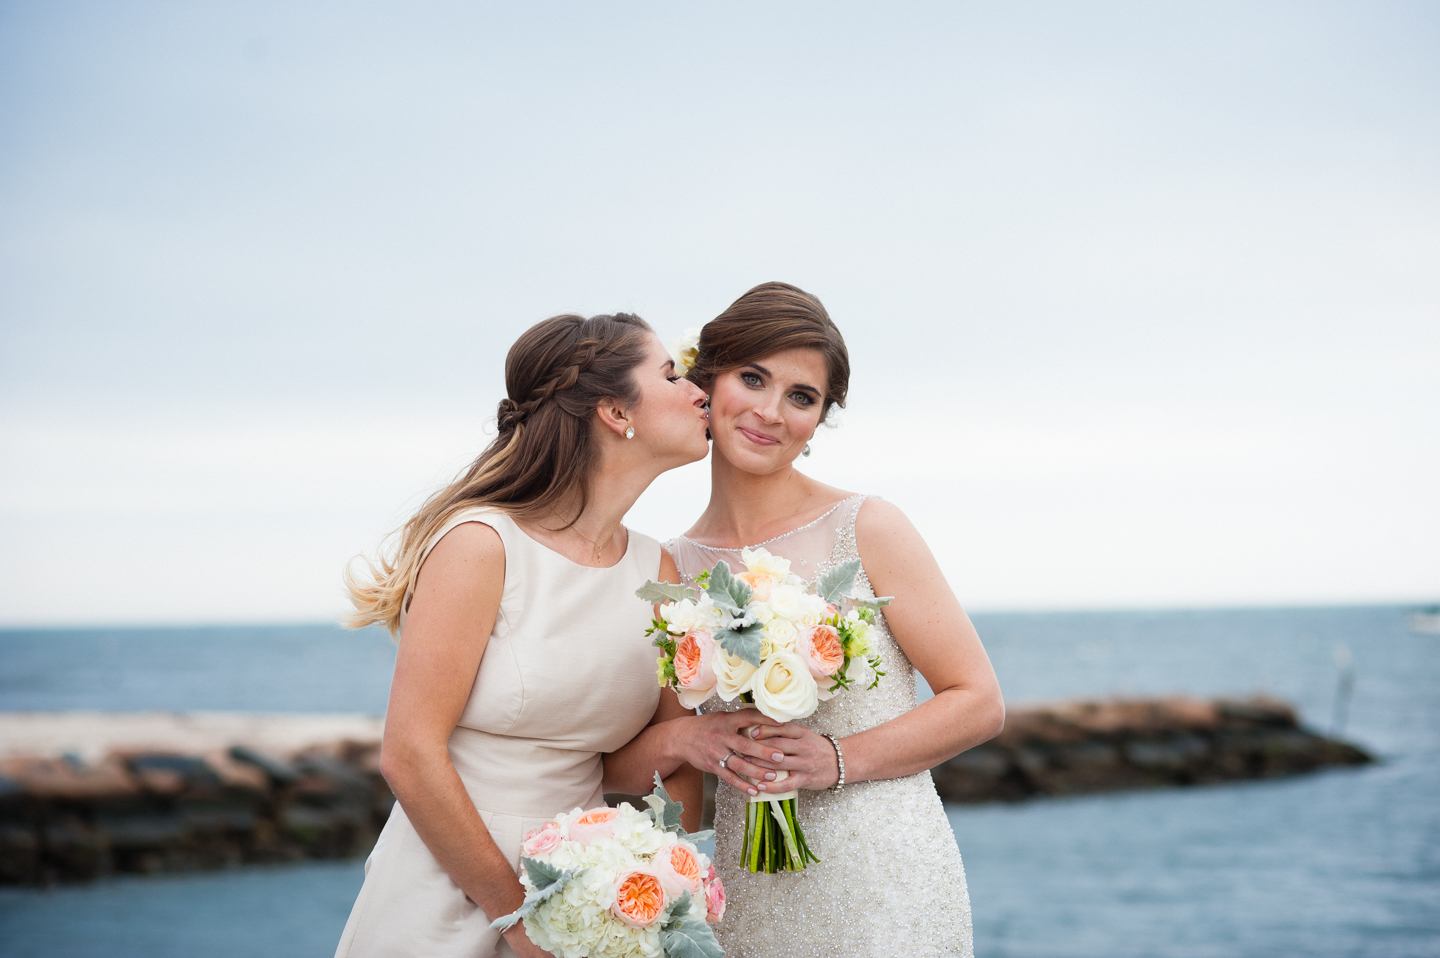 bridesmaid gives the beautiful bride a kiss on the cheek